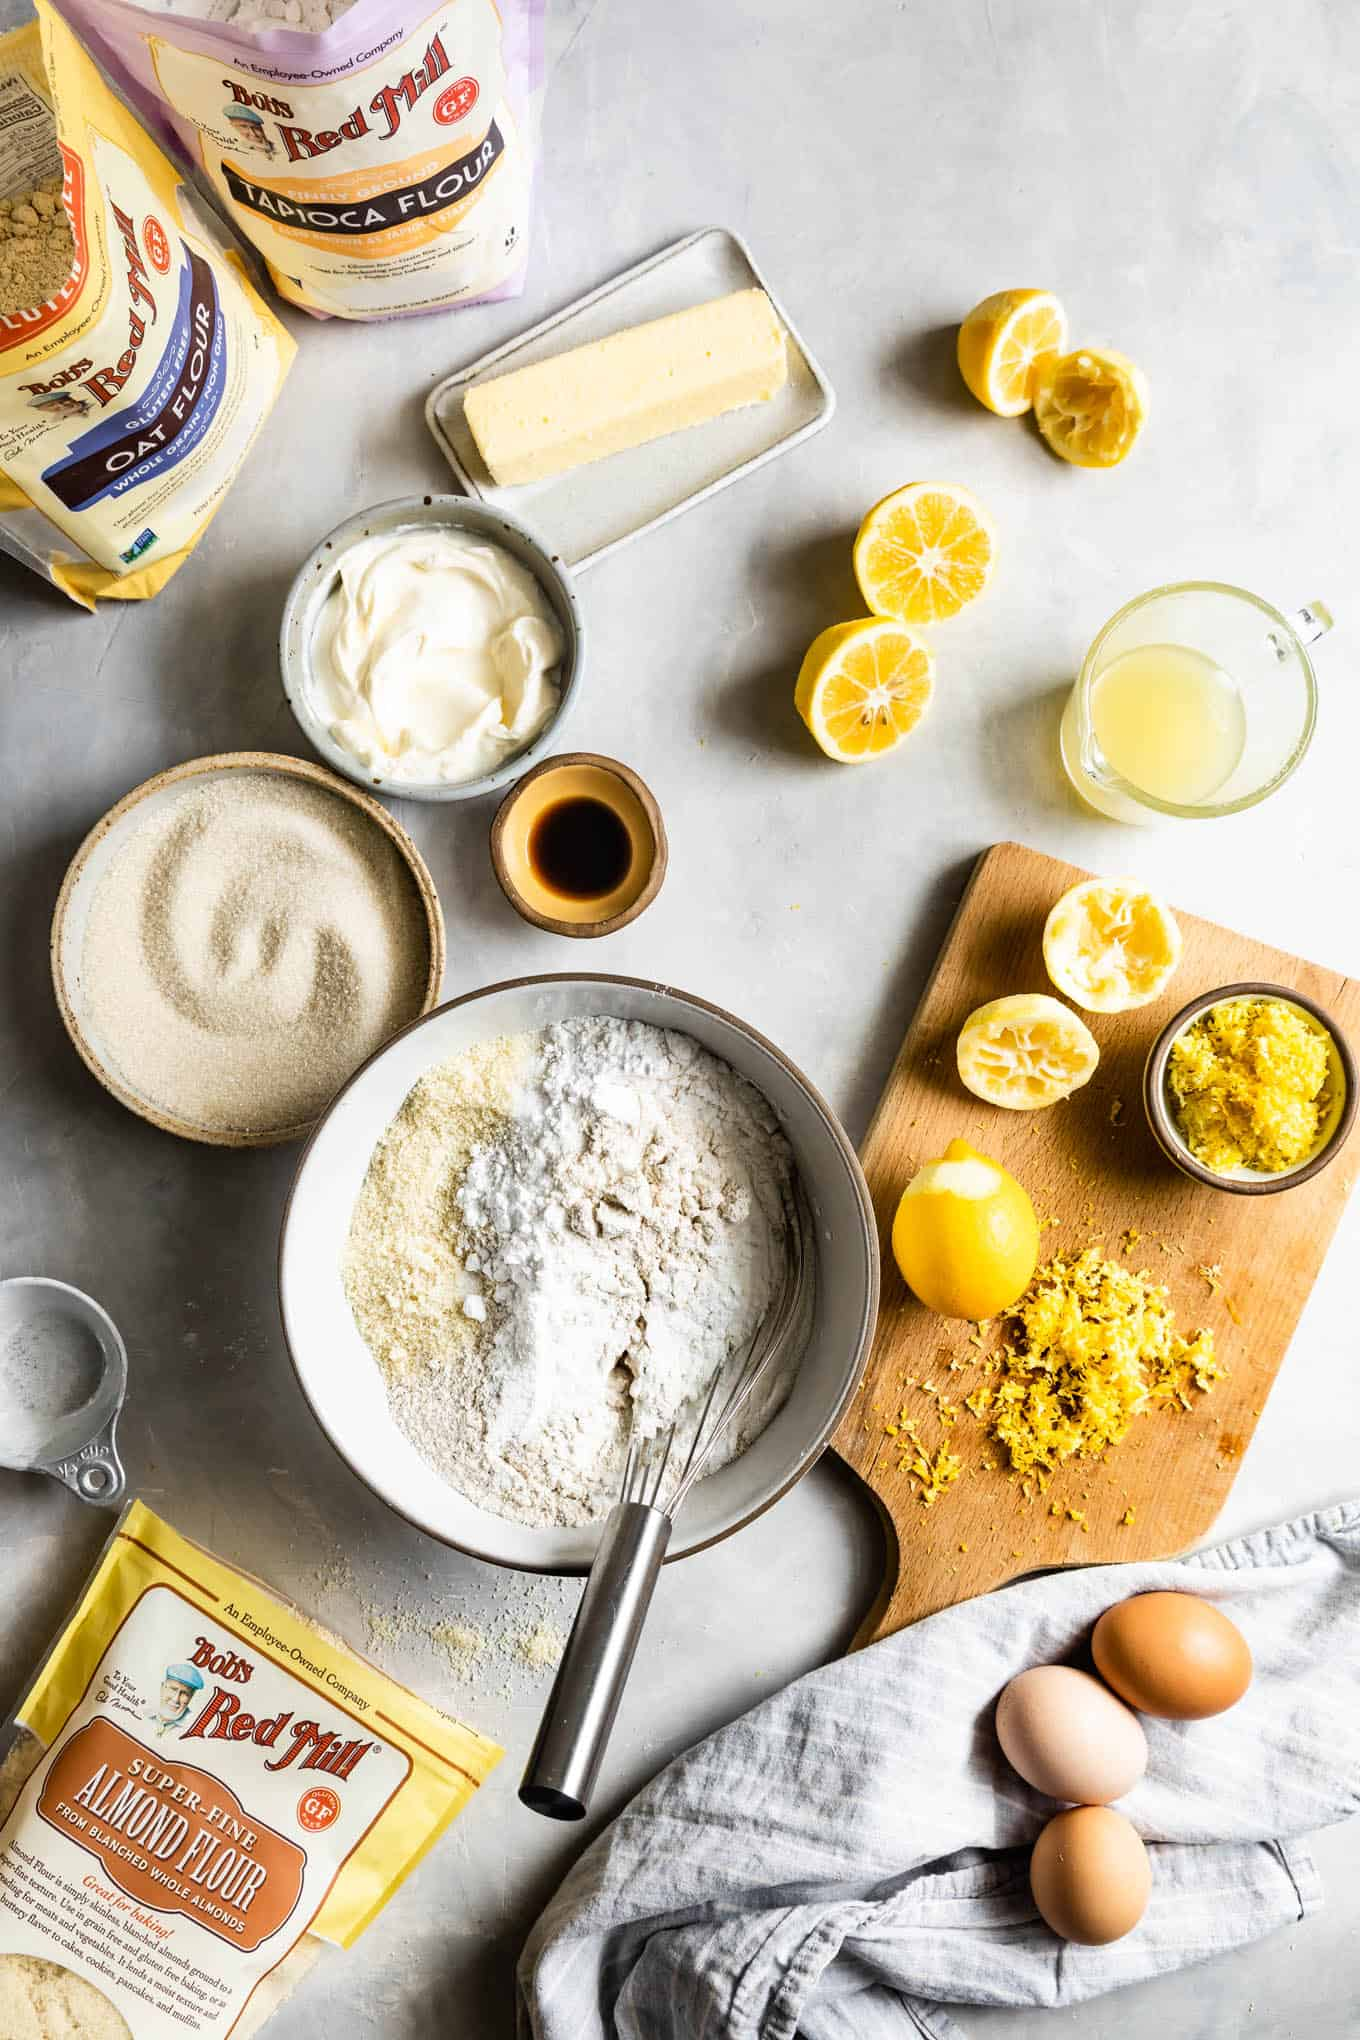 Ingredients for Gluten-Free Lemon Cake